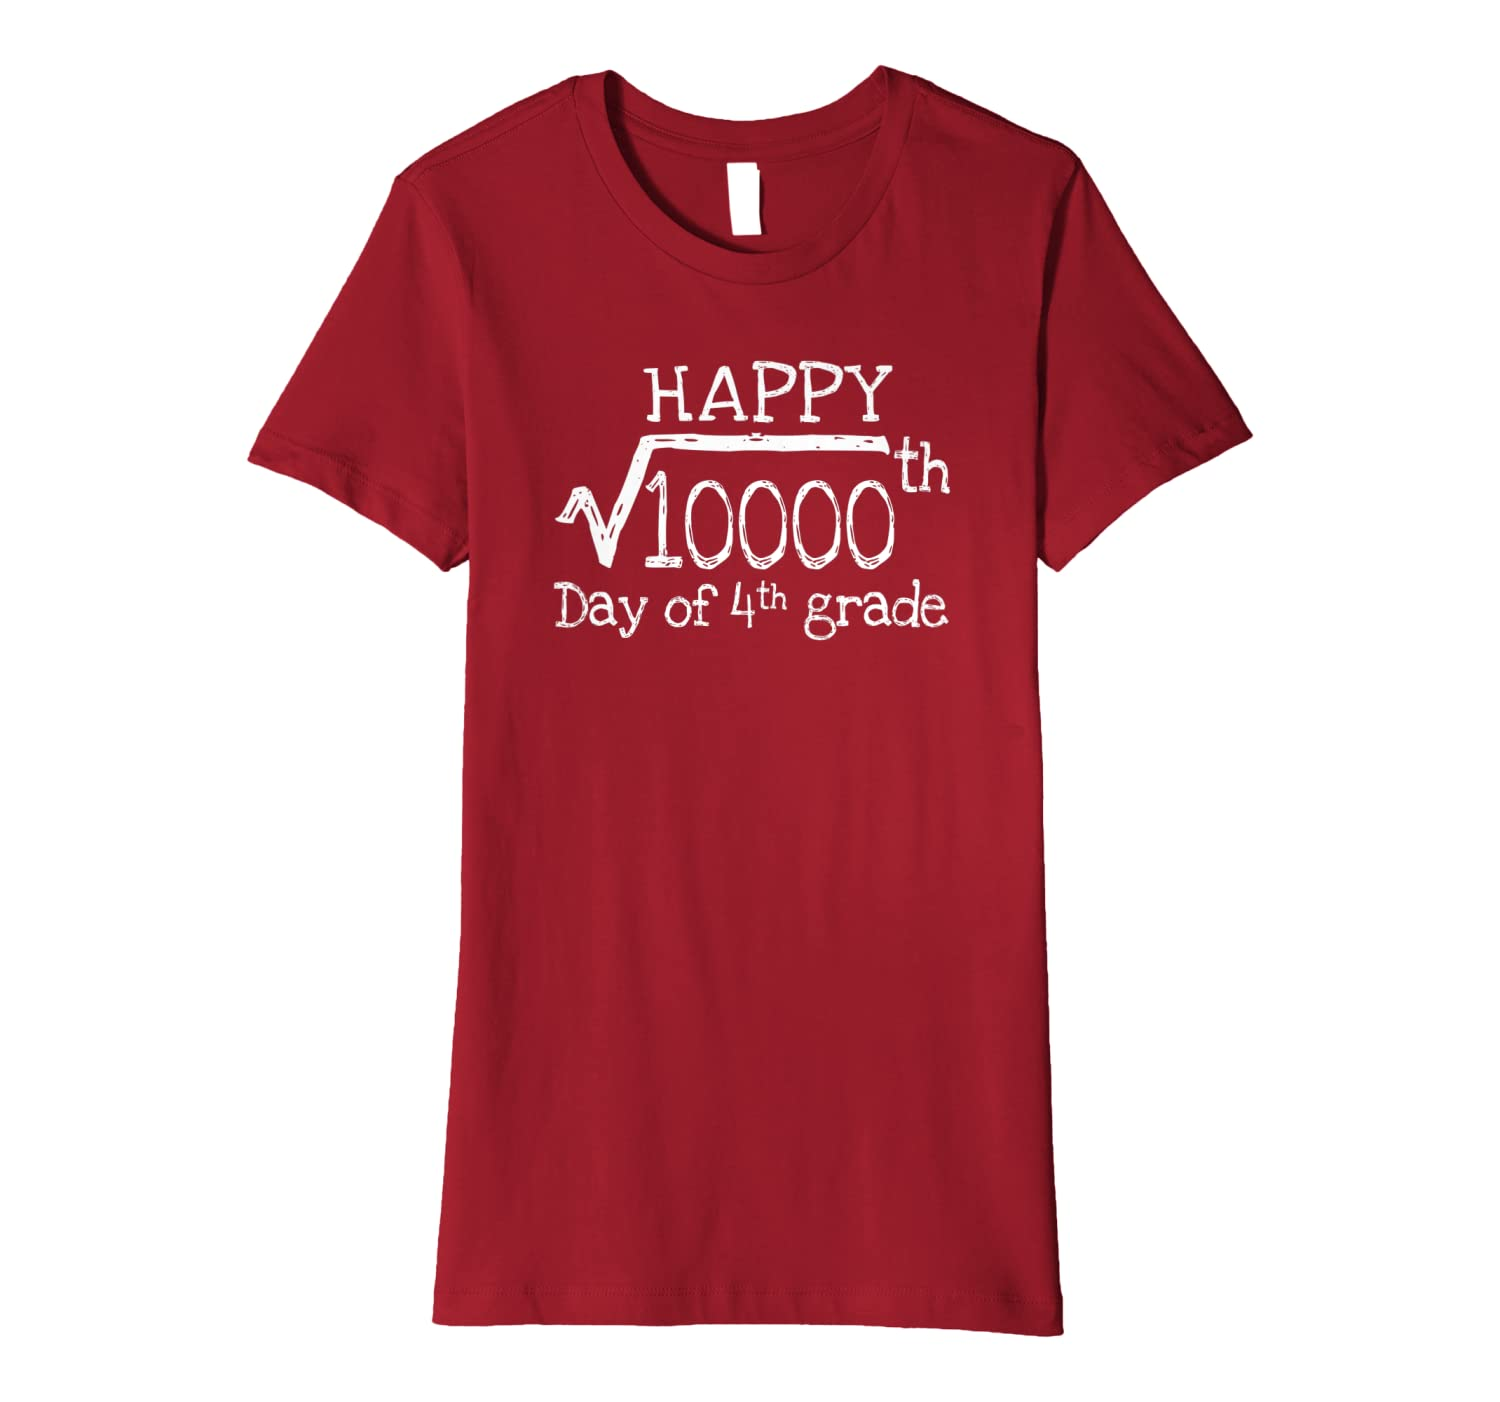 100th Day Of 4th grade Square Root of 10000 Math Teachers Premium T-Shirt